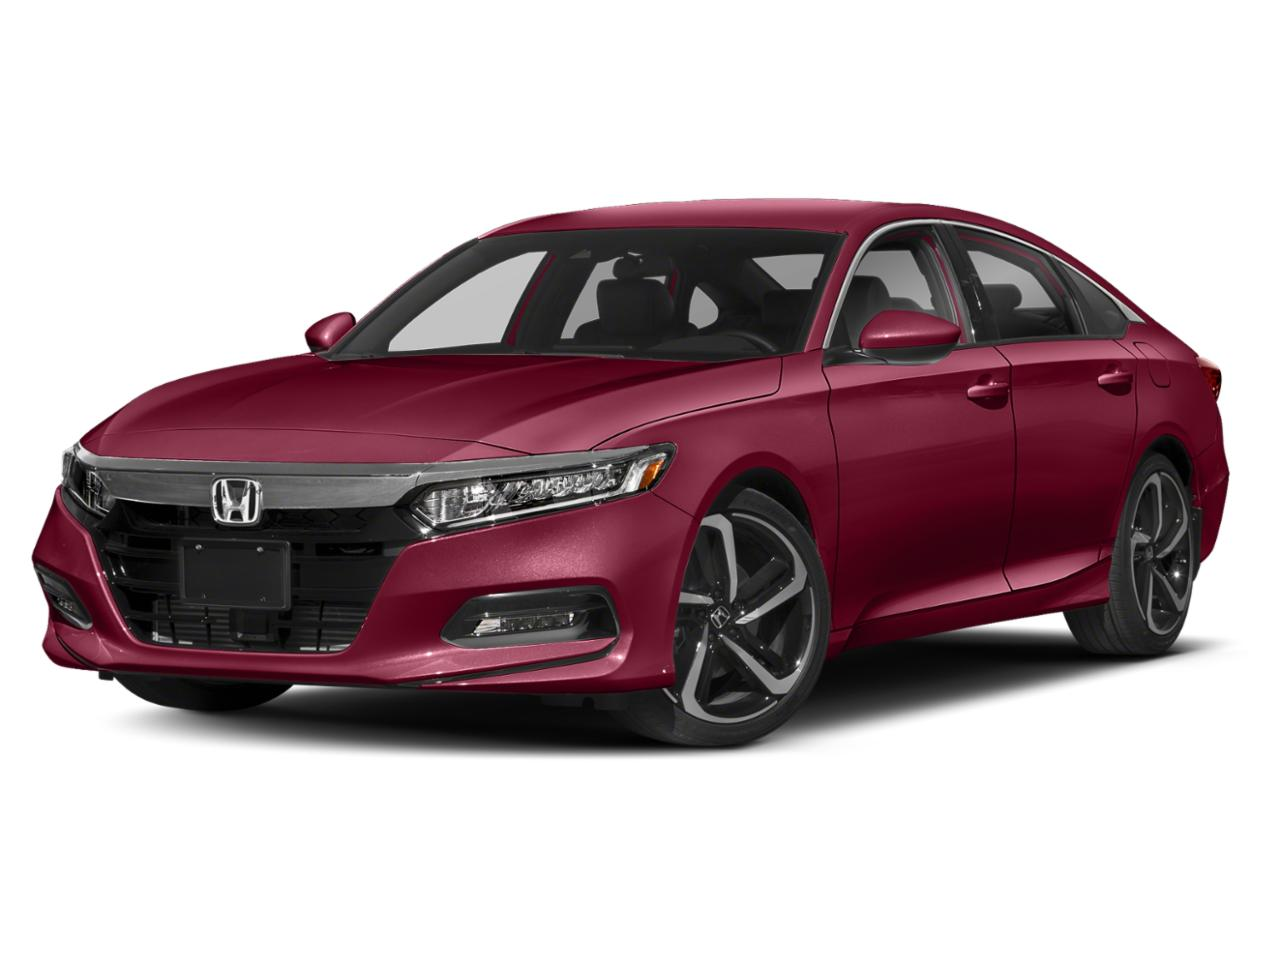 2018 Honda Accord Sedan Vehicle Photo in San Antonio, TX 78257